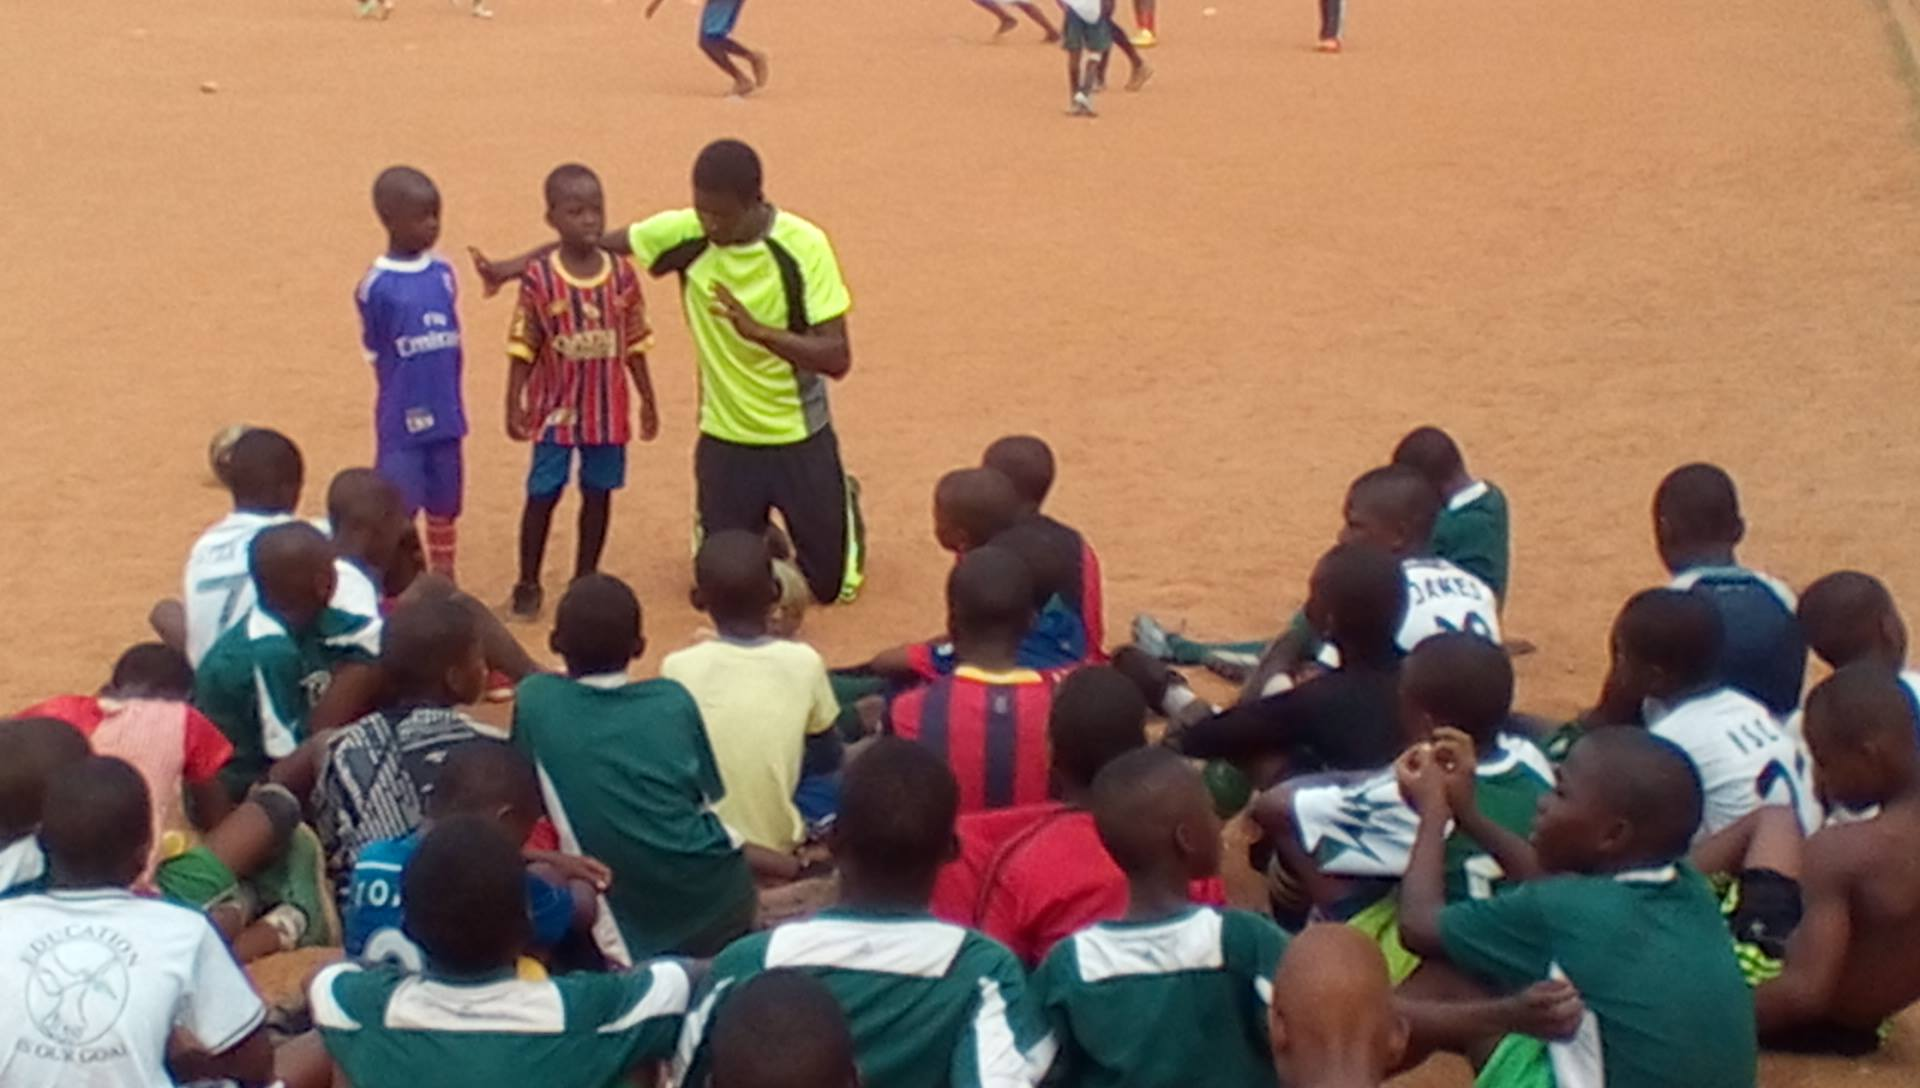 Children are instructed about football